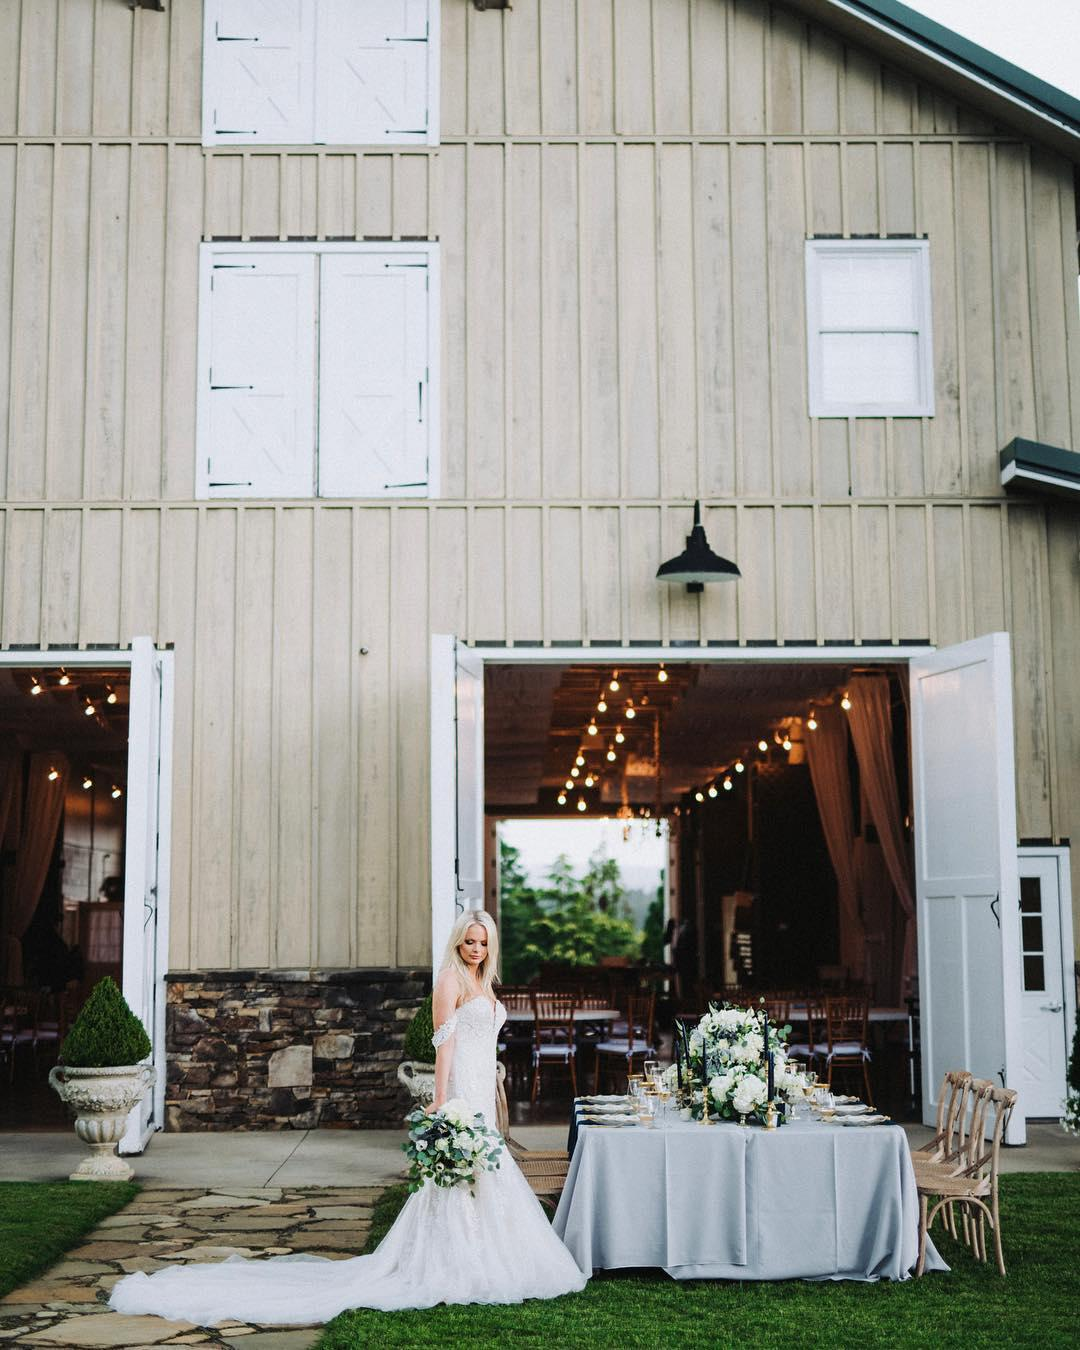 Outdoor Wedding Spots Near Me: 36 Of Georgia's Most Gorgeous Wedding Venues